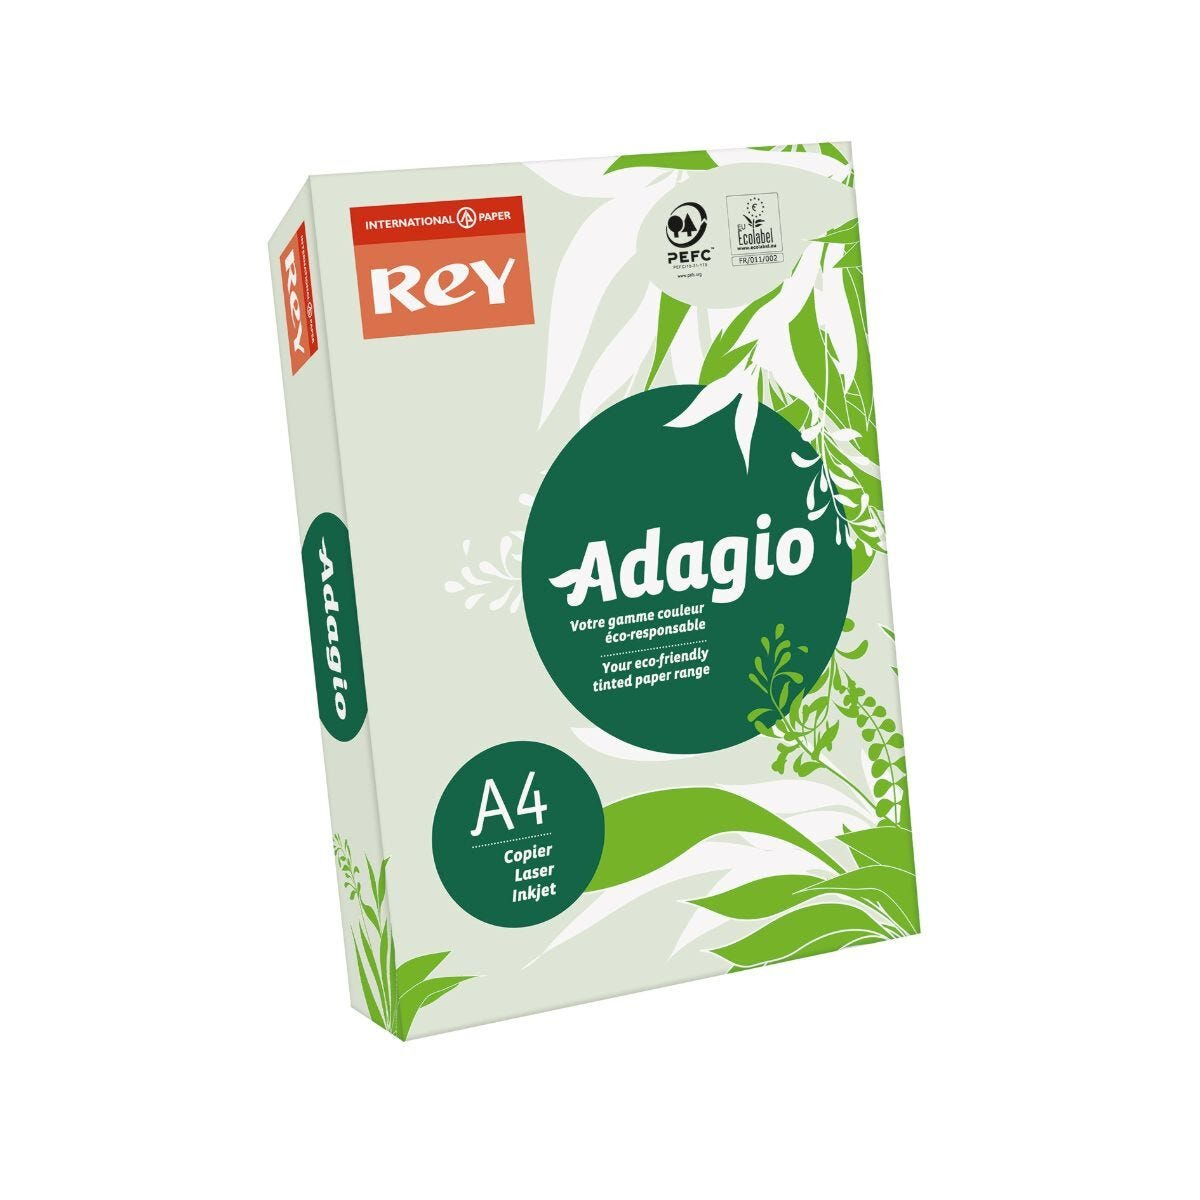 Rey Adagio Ream of Paper Pastel Coloured A4 80gsm 500 Sheets Green